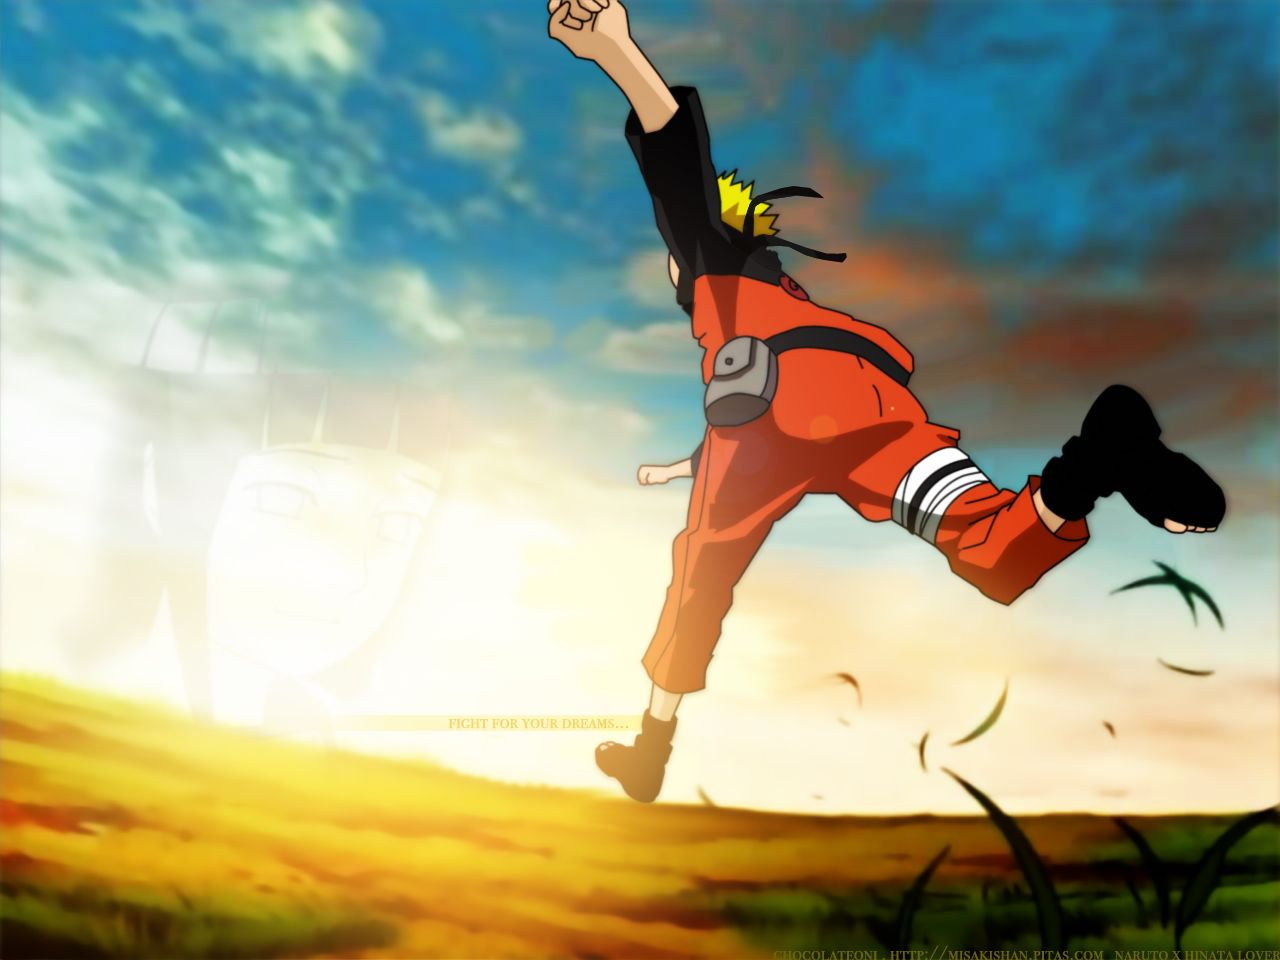 Naruto Hd Wallpaper Saqibsomal 2015 07 31 Shippuden Ultimate Ninja Storm 4 Will Be Released In 2016 Japan 2